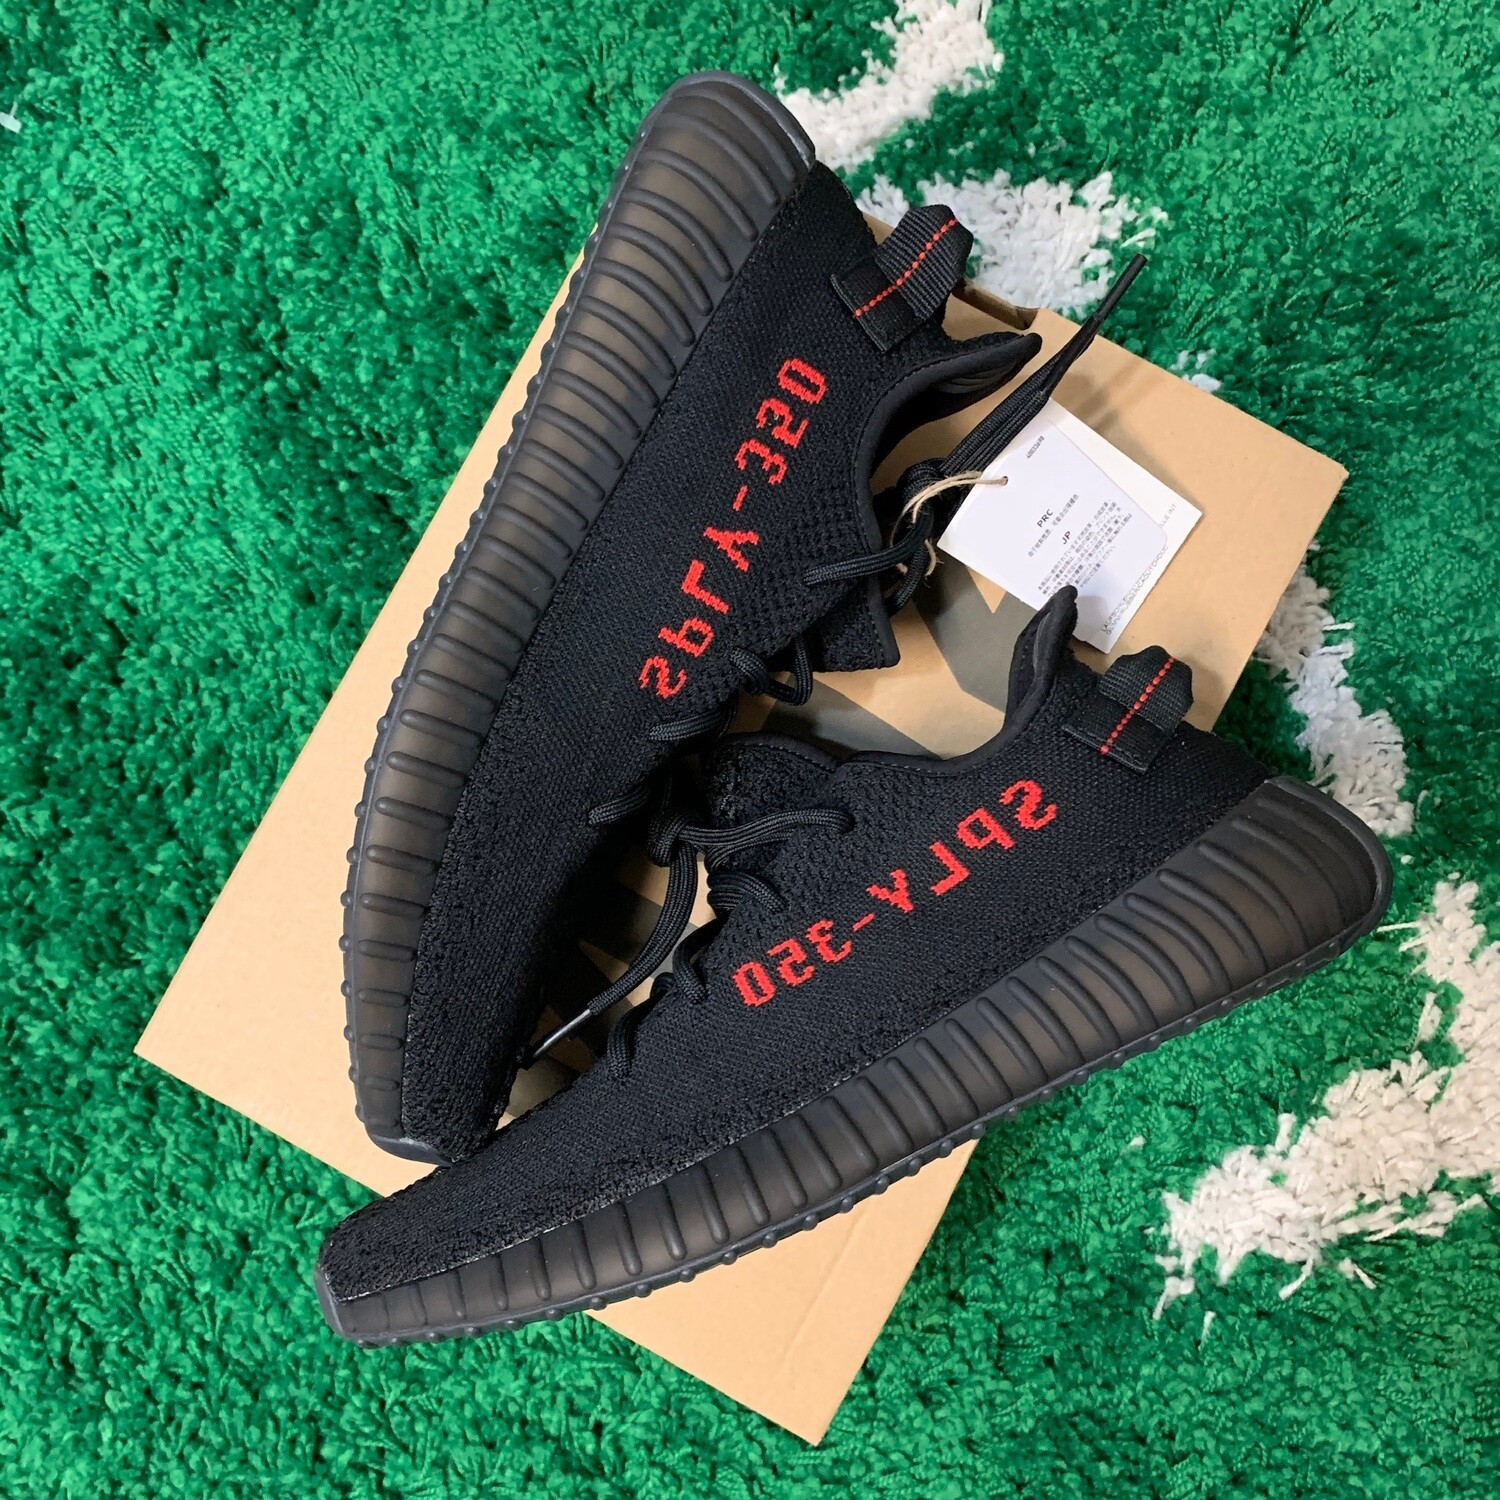 Adidas Yeezy Boost V2 Bred Size 9.5